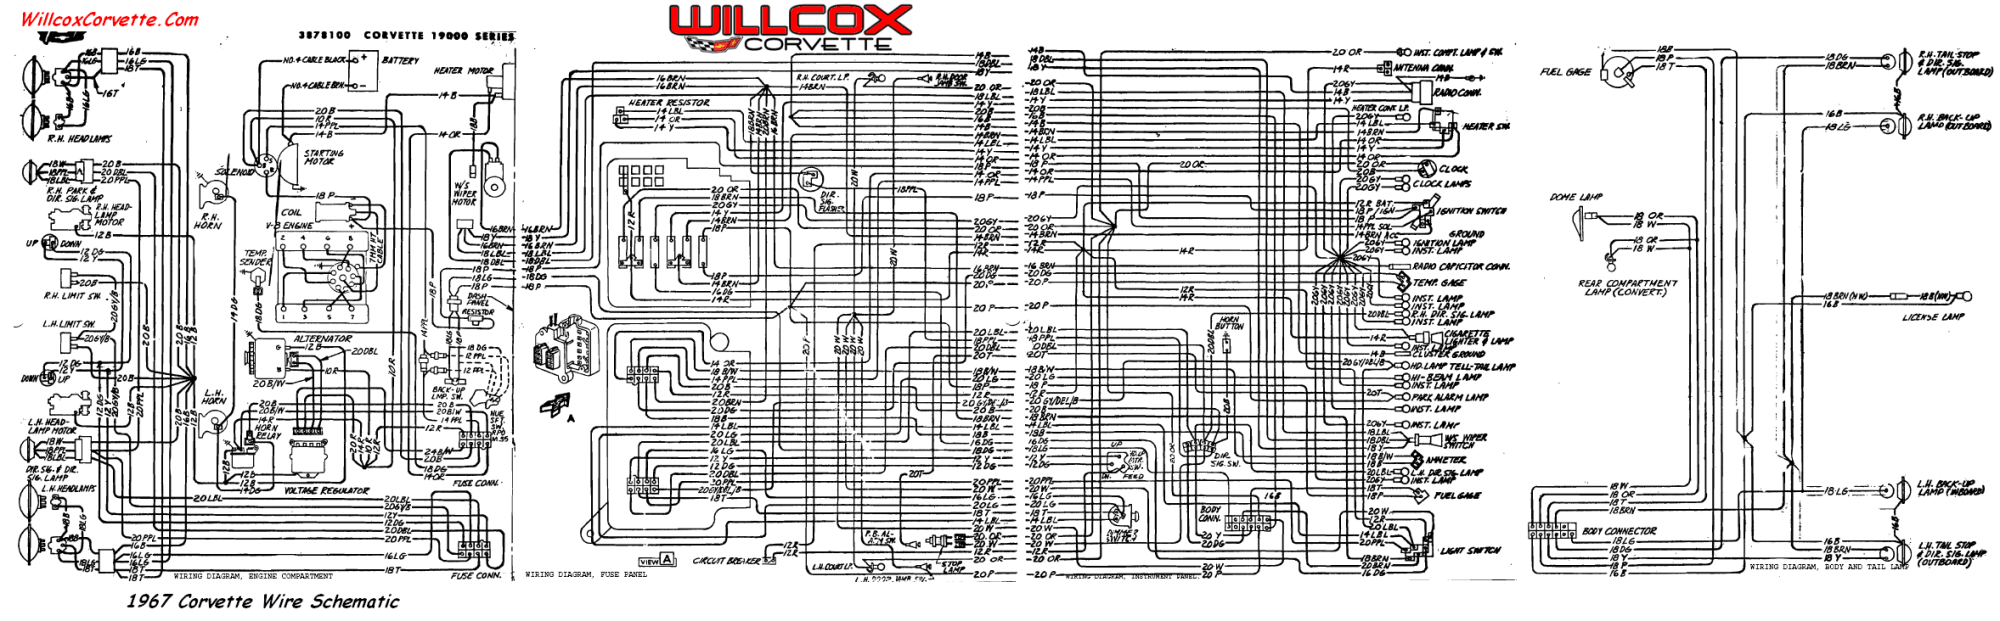 hight resolution of 73 corvette wiring diagram wiring diagram name 75 c3 corvette wiring diagram free download